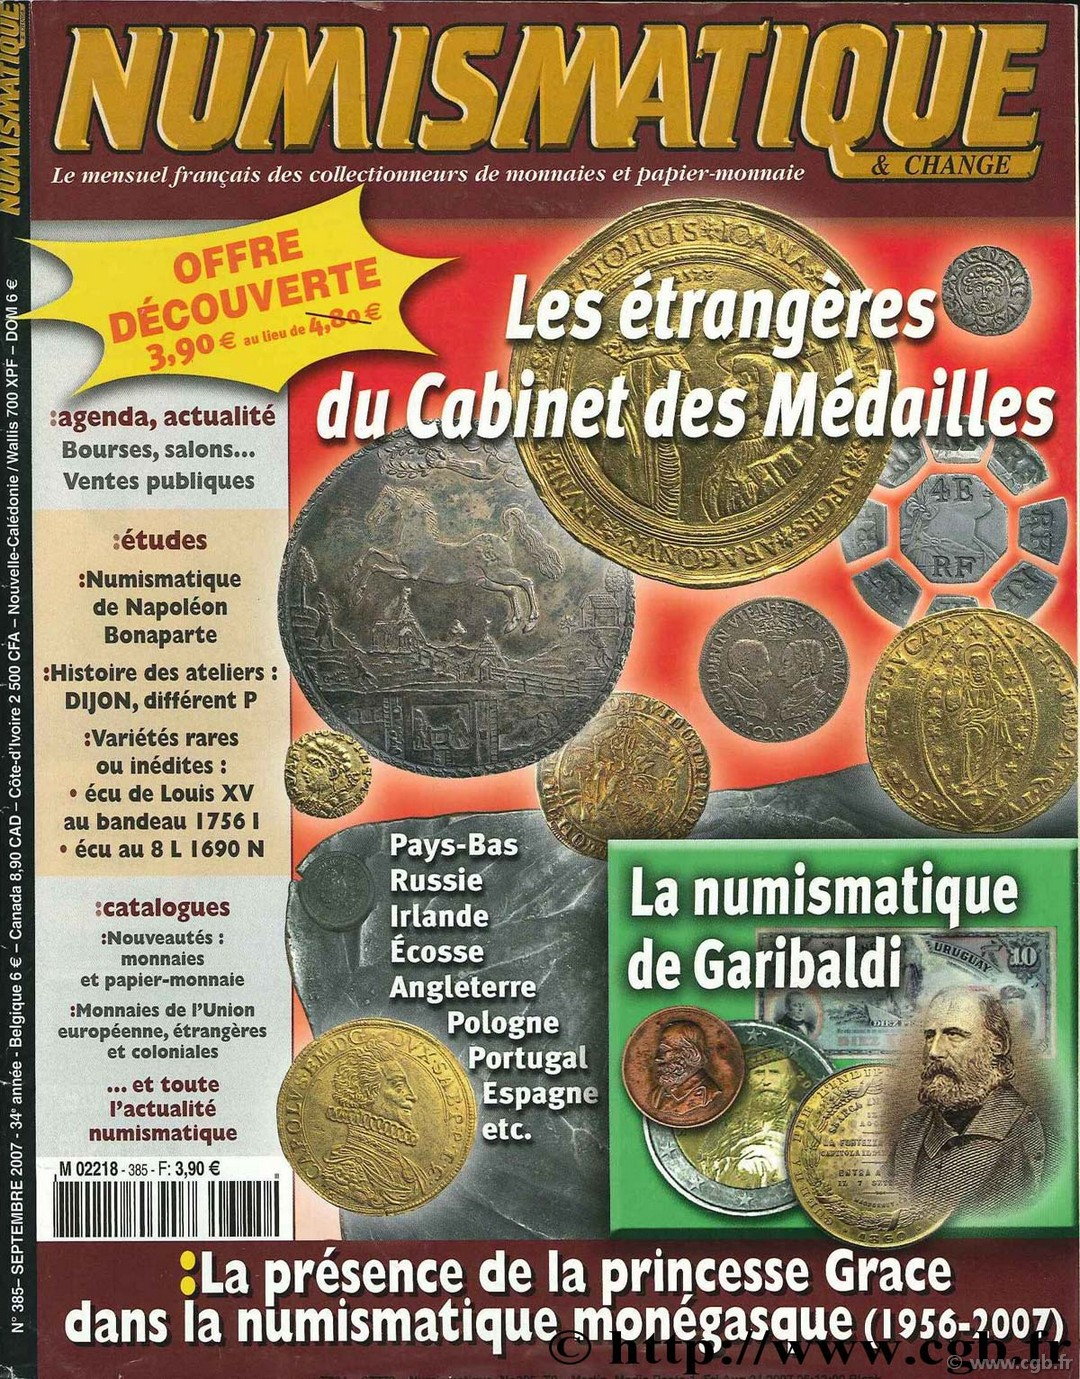 Numismatique & Change, Septembre 2007, n°385 NUMISMATIQUE ET CHANGE